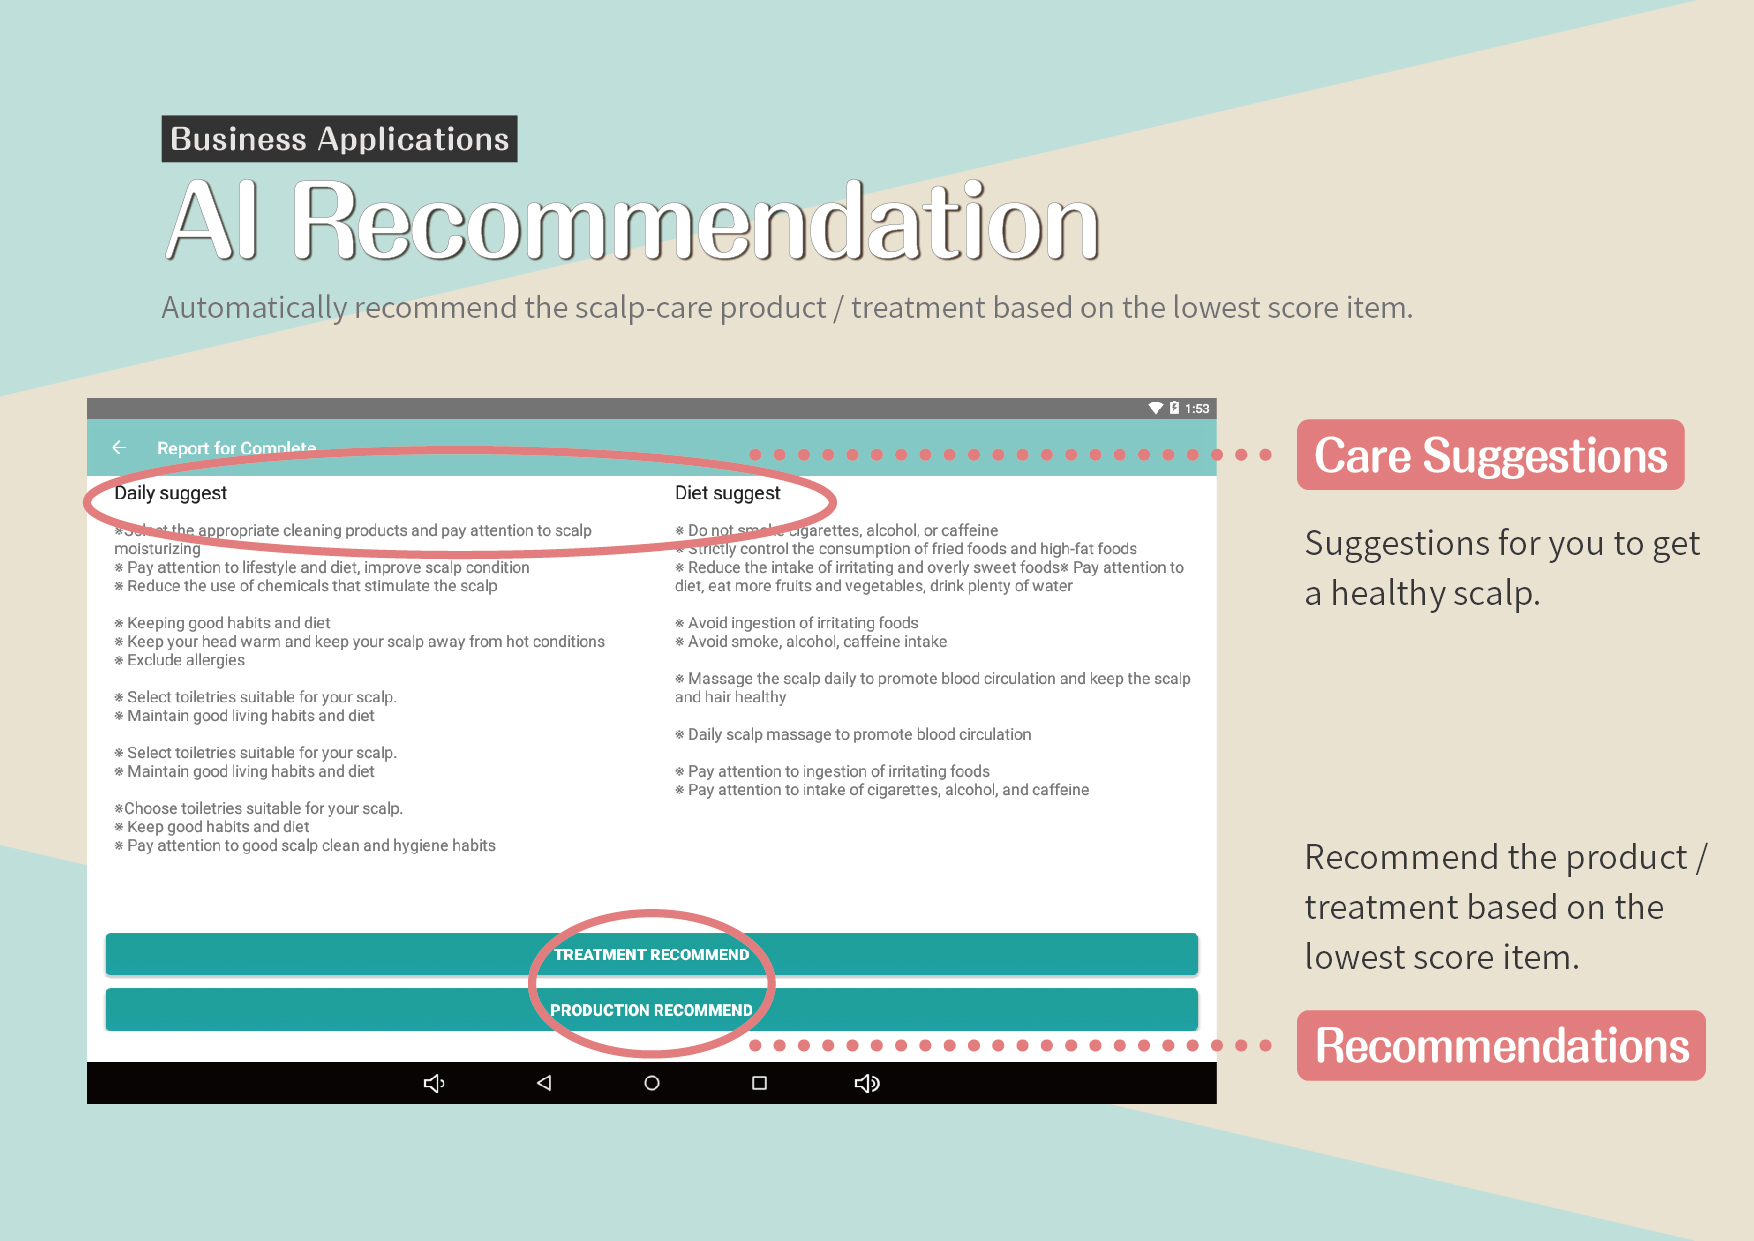 AI Recommendation: Automatically recommend the scalp-care product / treatment based on the lowest score item.